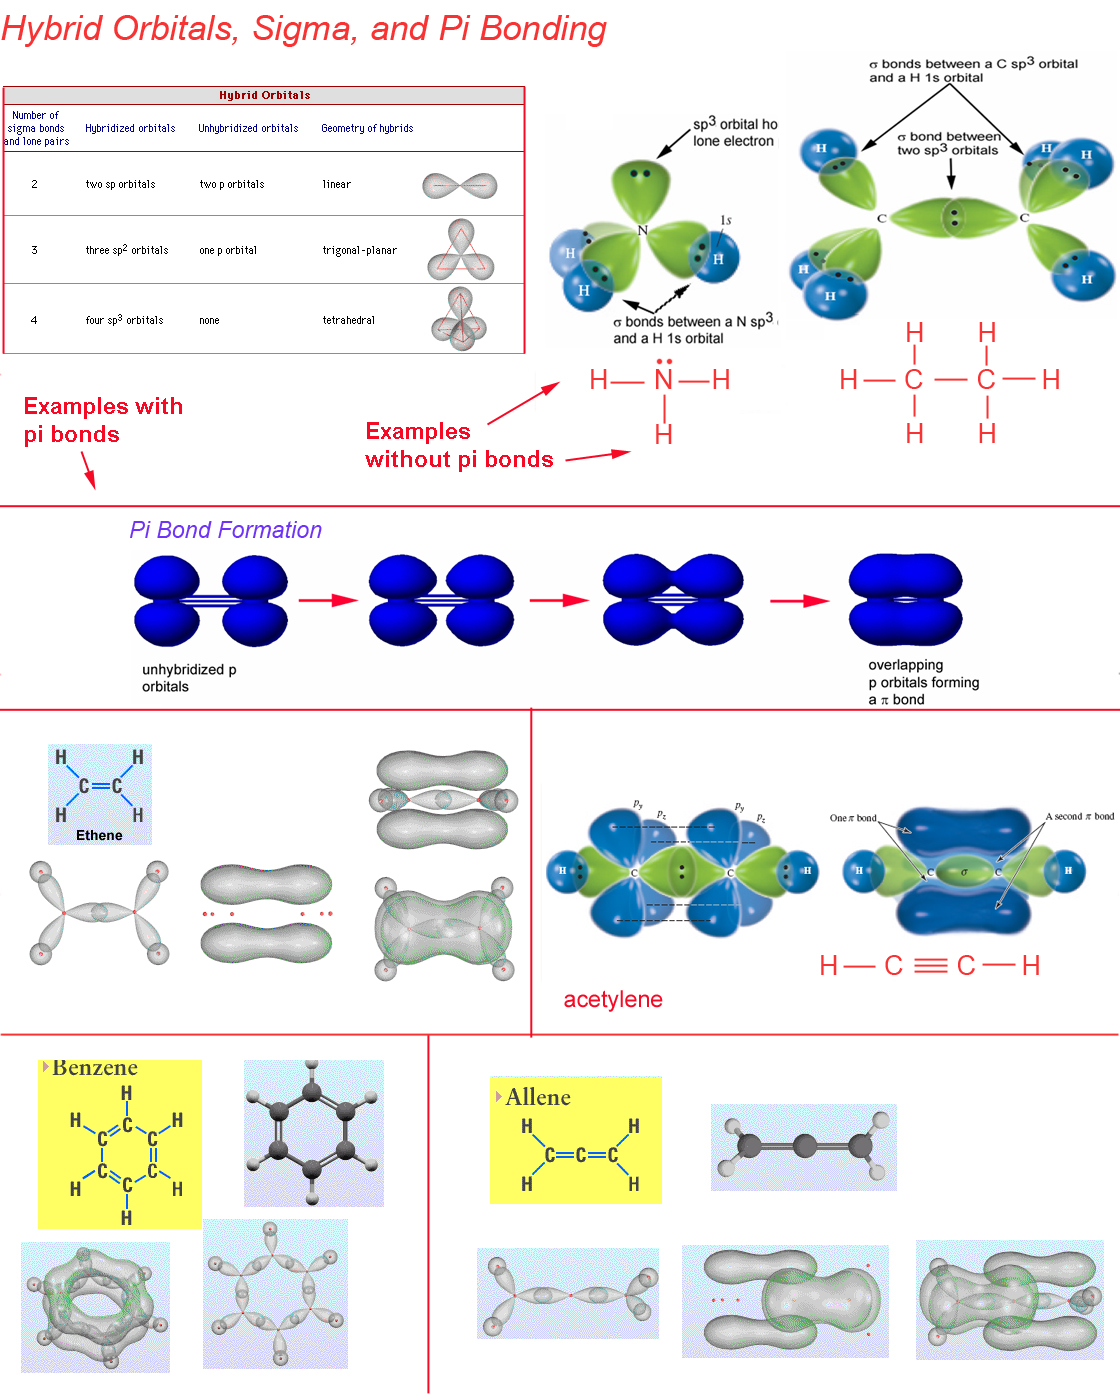 HybridOrbitals and Pi Bonding